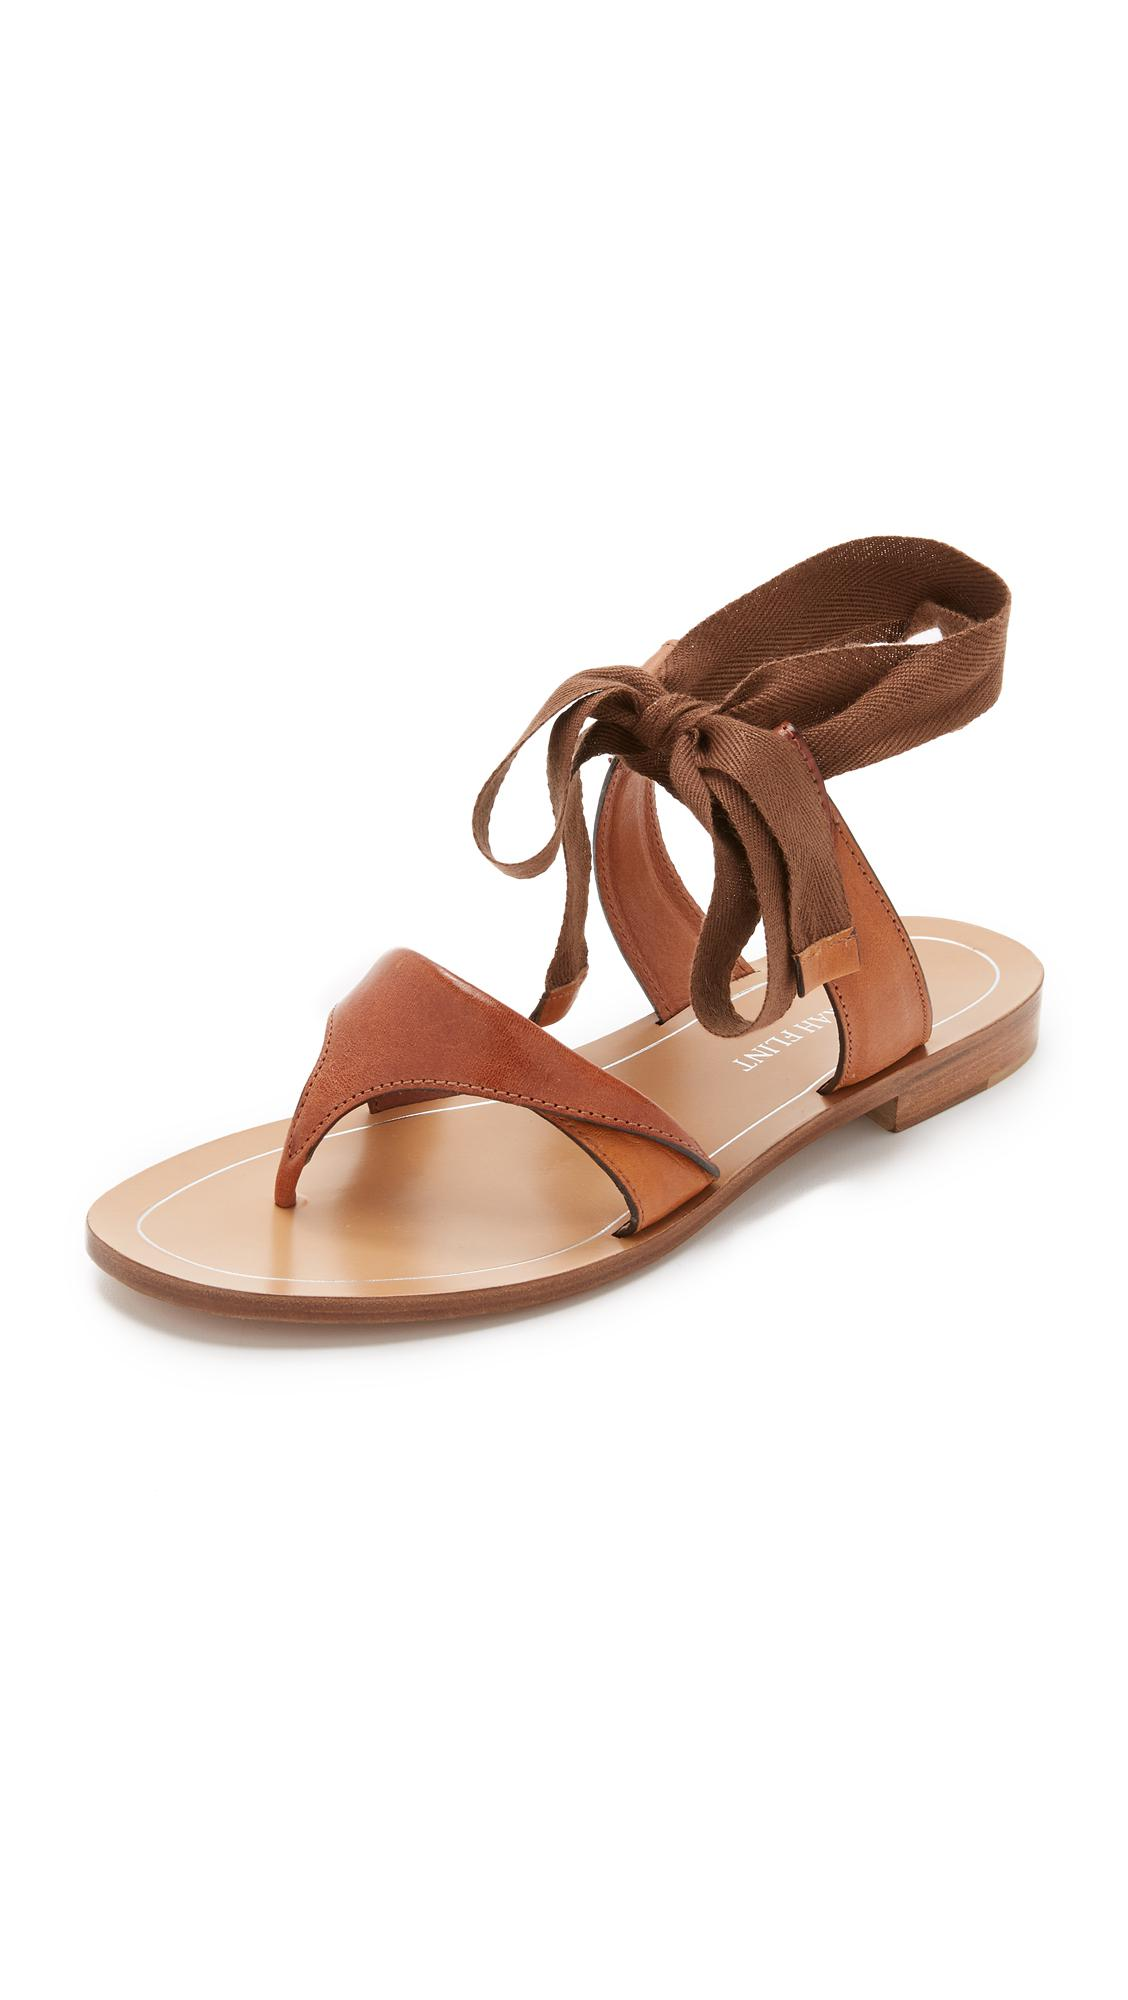 Lyst Sarah Flint Tie Up Sandals In Brown